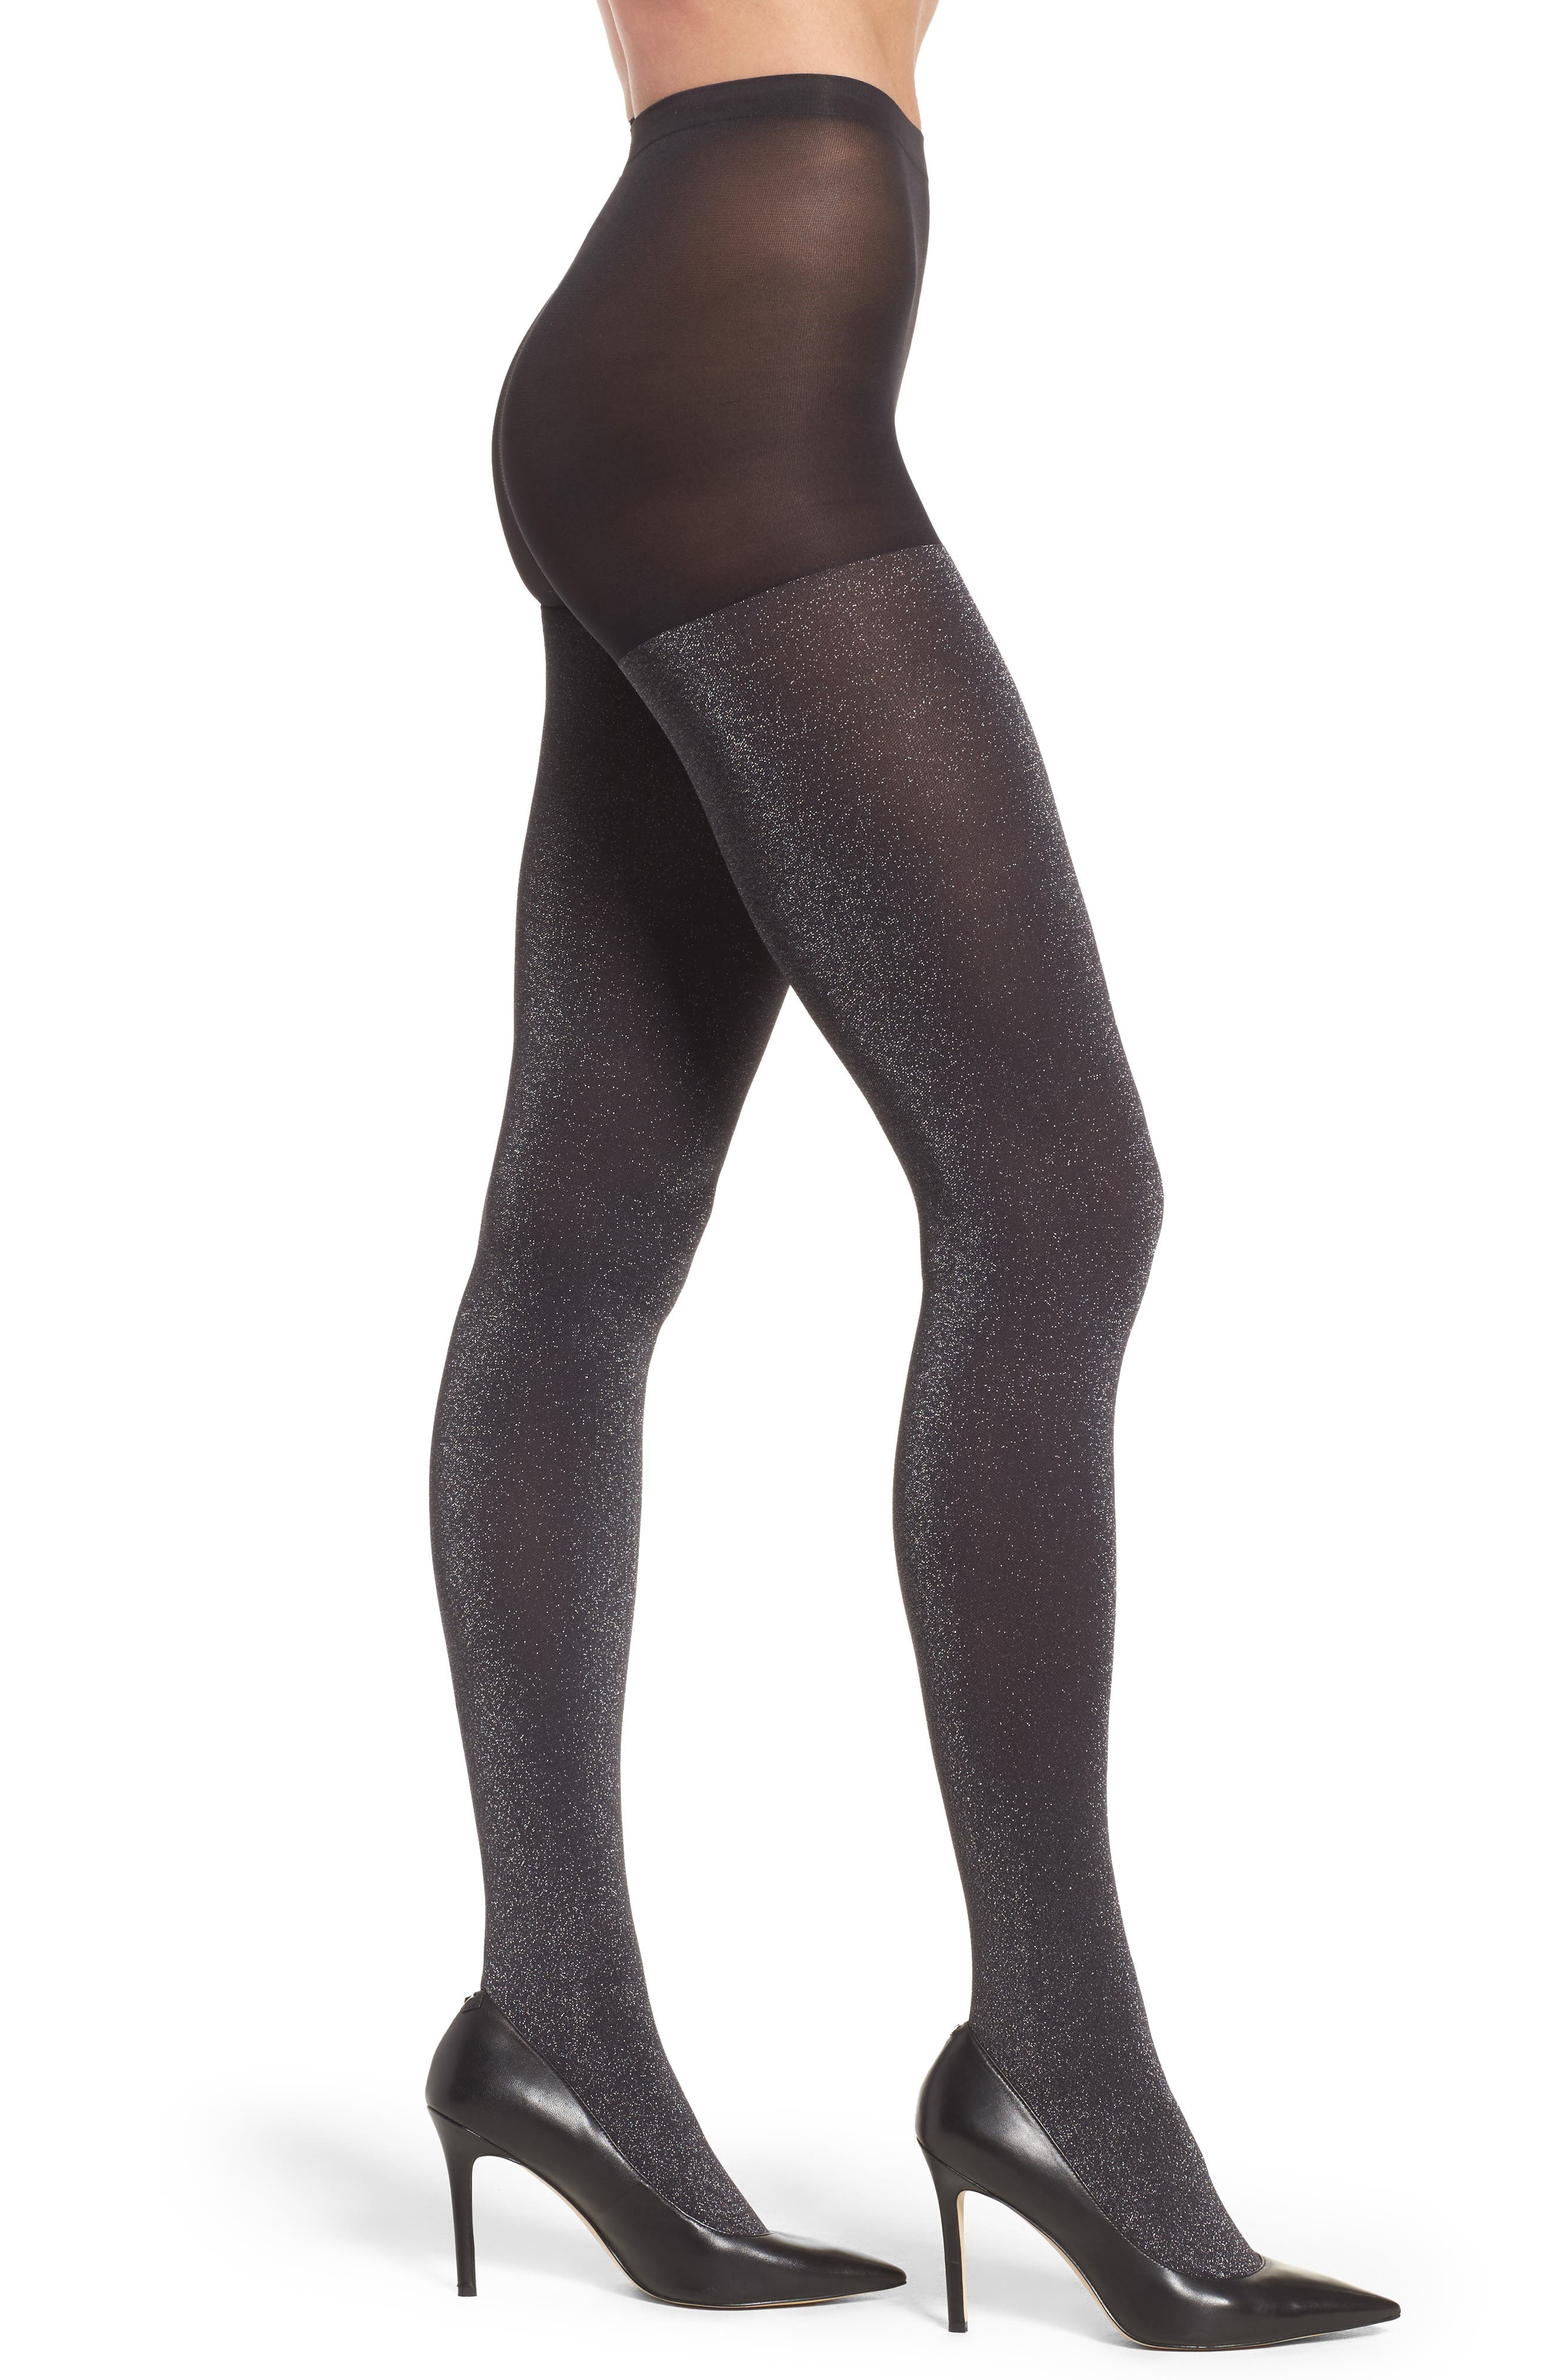 Hue Metallic Control Top Tights